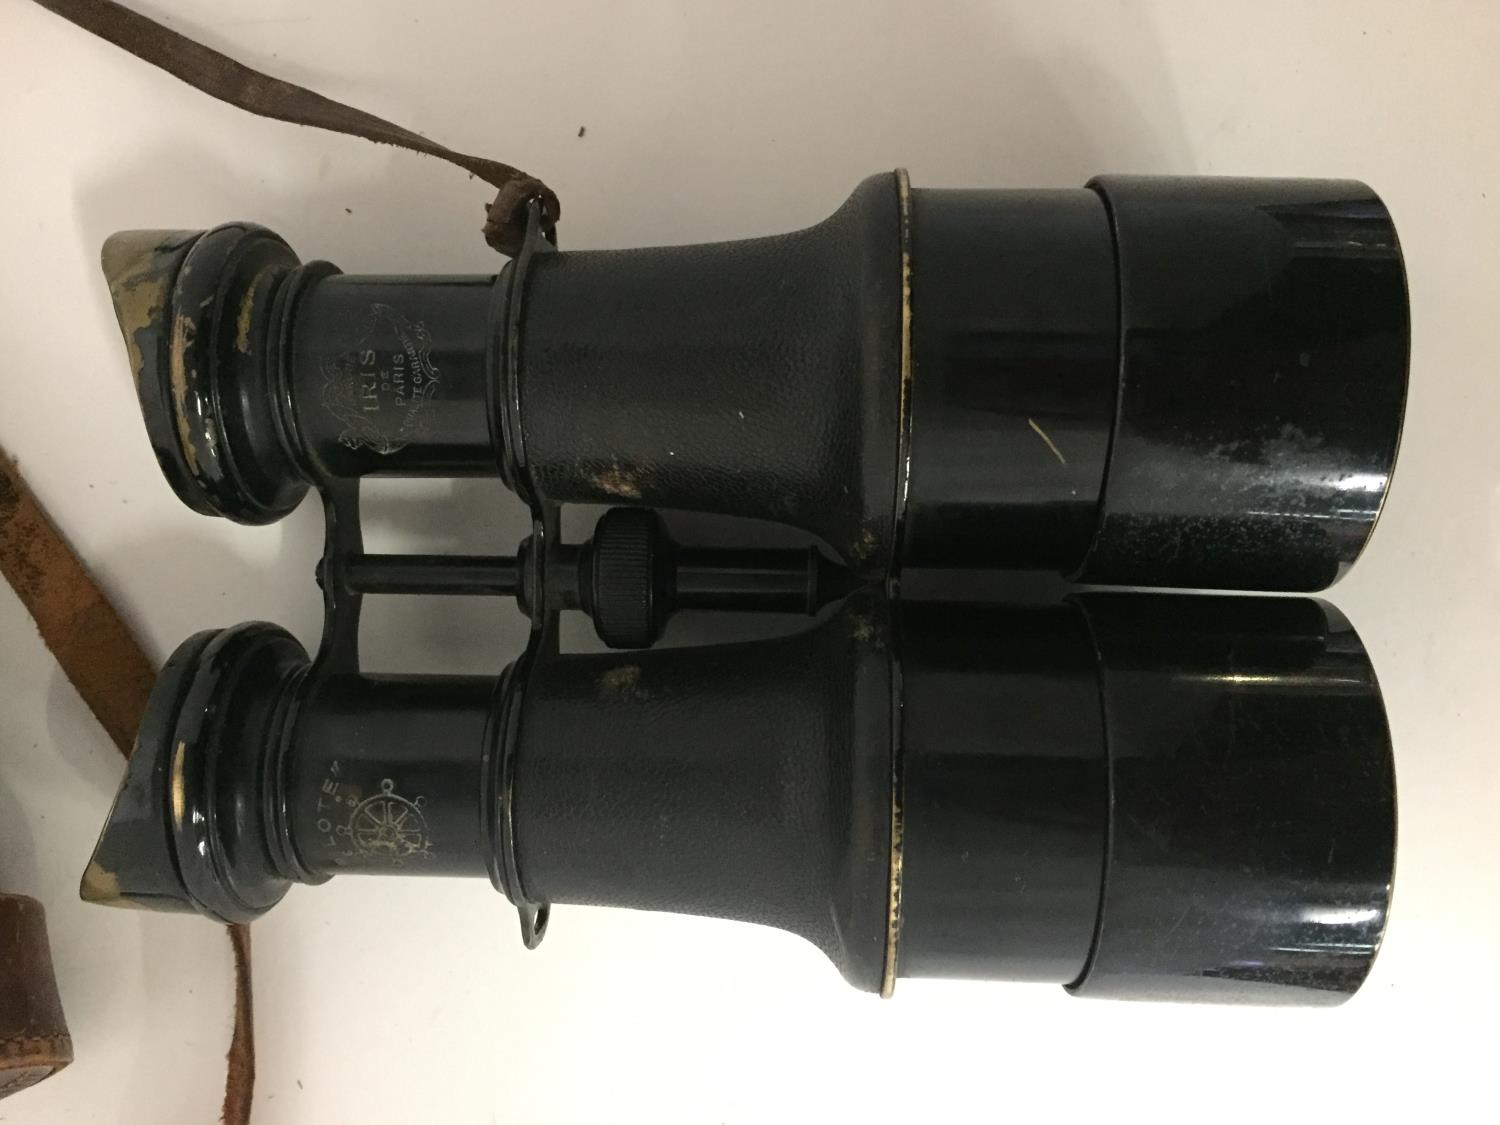 A PAIR OF EARLY 20TH CENTURY PILOTE BINOCULARS BY IRIS DE PARIS WITH LEATHER CASE - Image 3 of 4